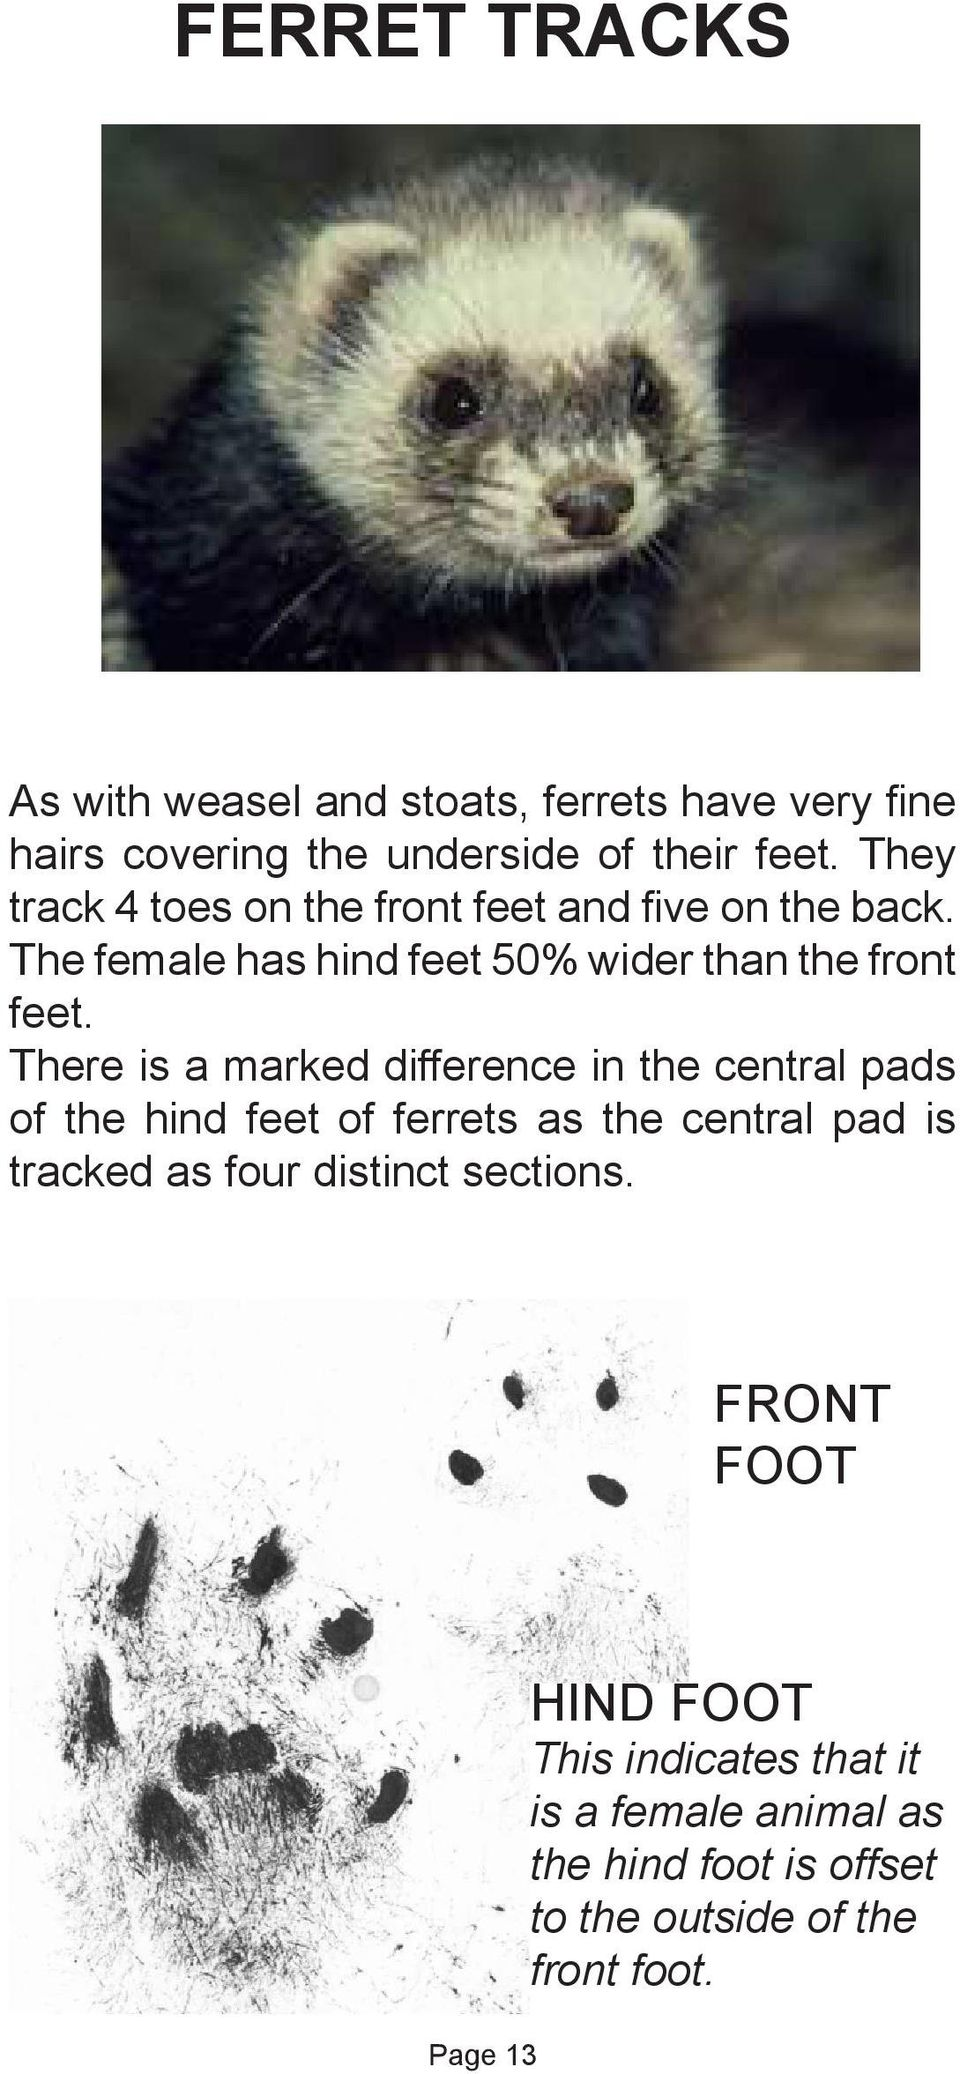 There is a marked difference in the central pads of the hind feet of ferrets as the central pad is tracked as four